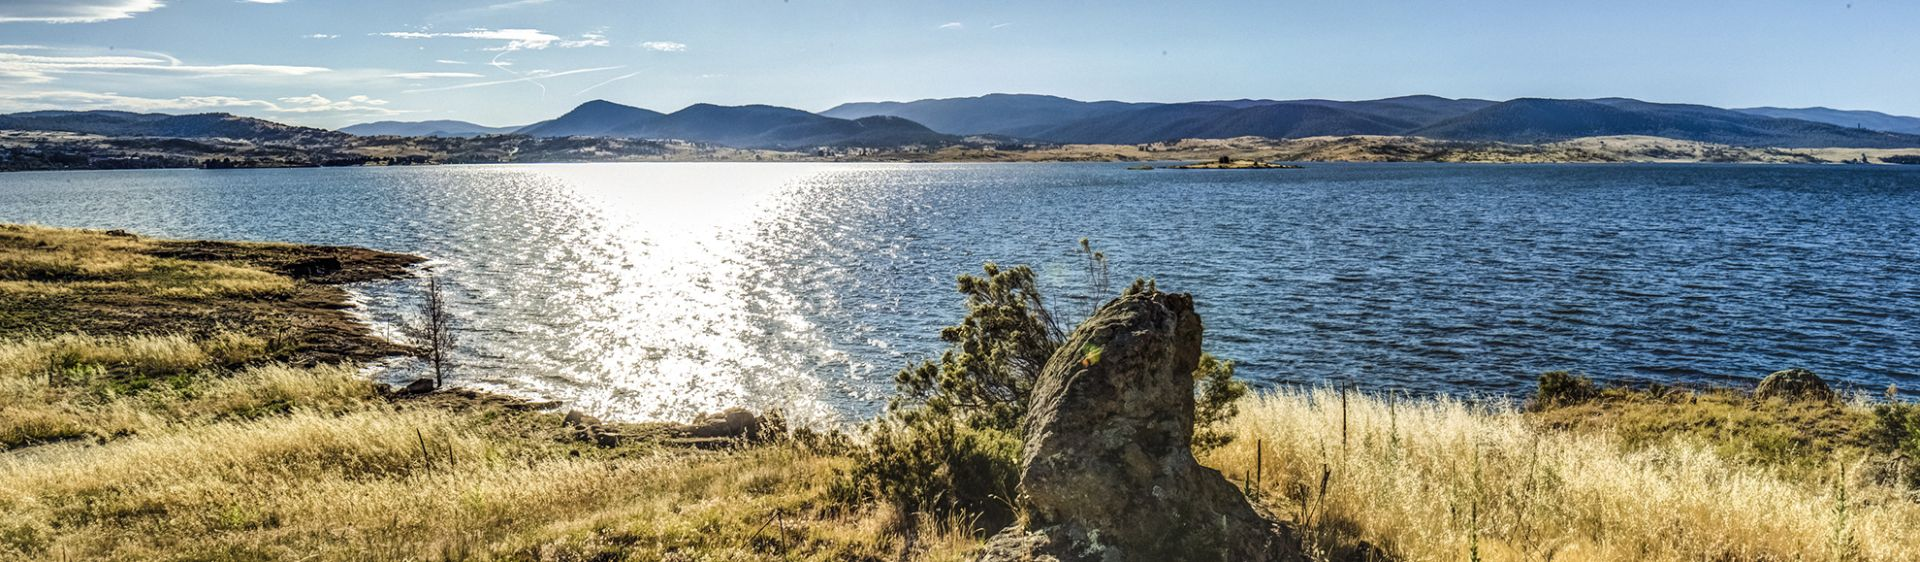 Lake Jindabyne - Kosciuszko National Park - Snowy Mountains